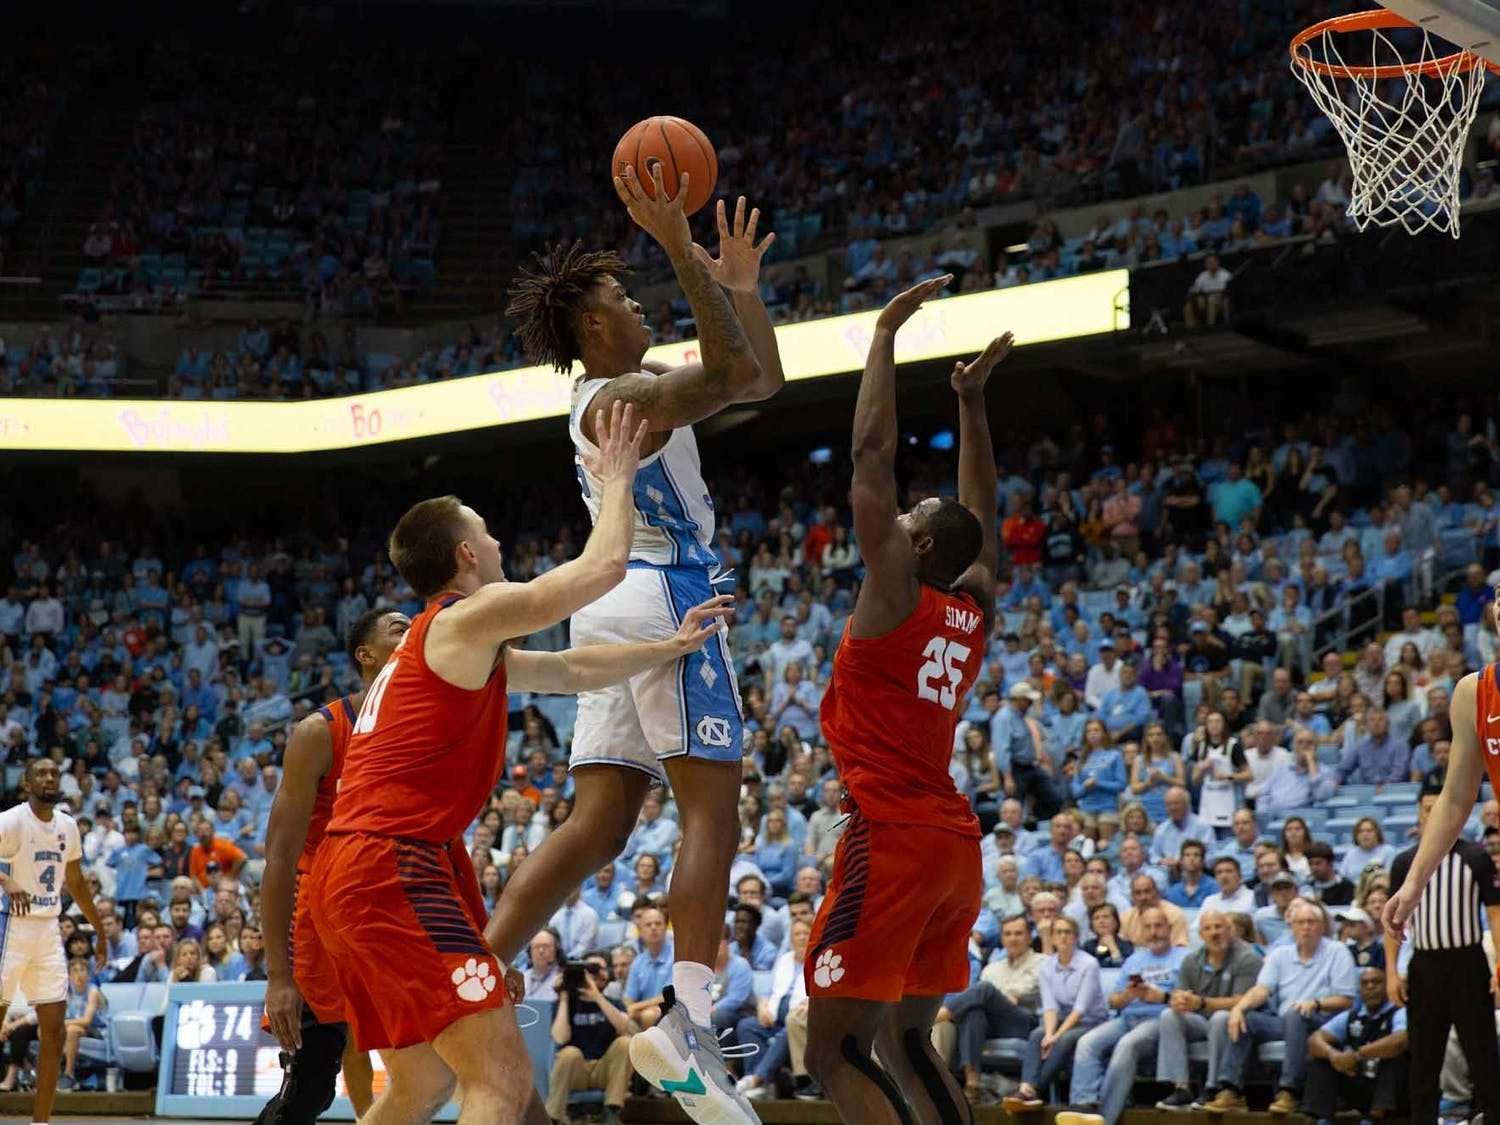 UNC first year Forward Armando Bacot (5) attempts free throw during the game against Clemson at the Dean Smith Center on Saturday Jan. 11, 2020. UNC lost to Clemson 79-76, ending the Tigers 0-59 losing streak in Chapel Hill.